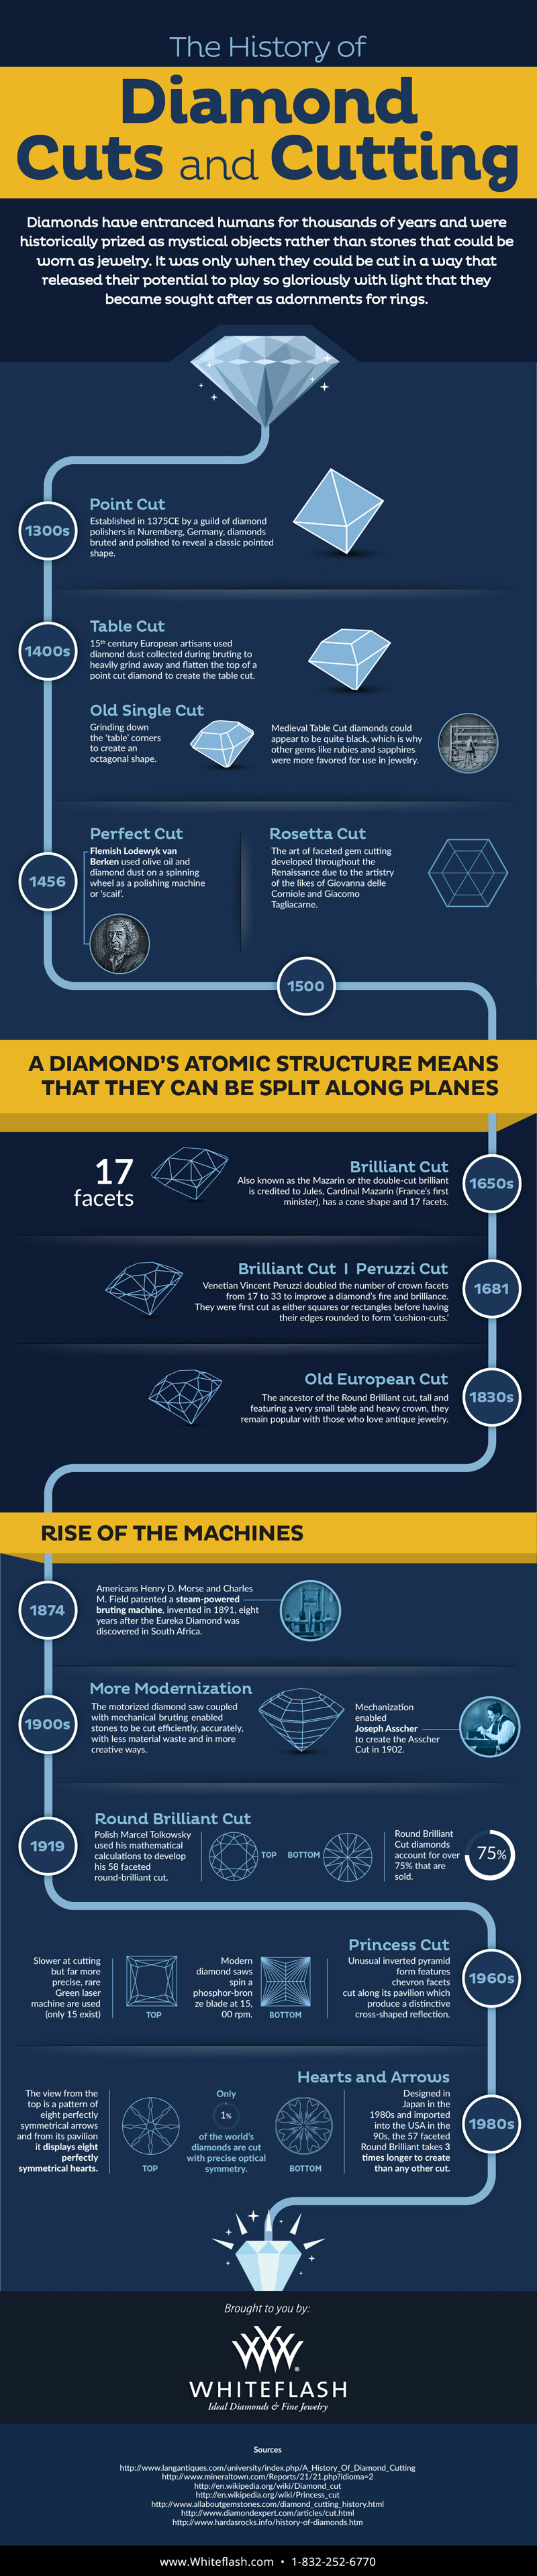 The History of Diamond Cuts and Cutting